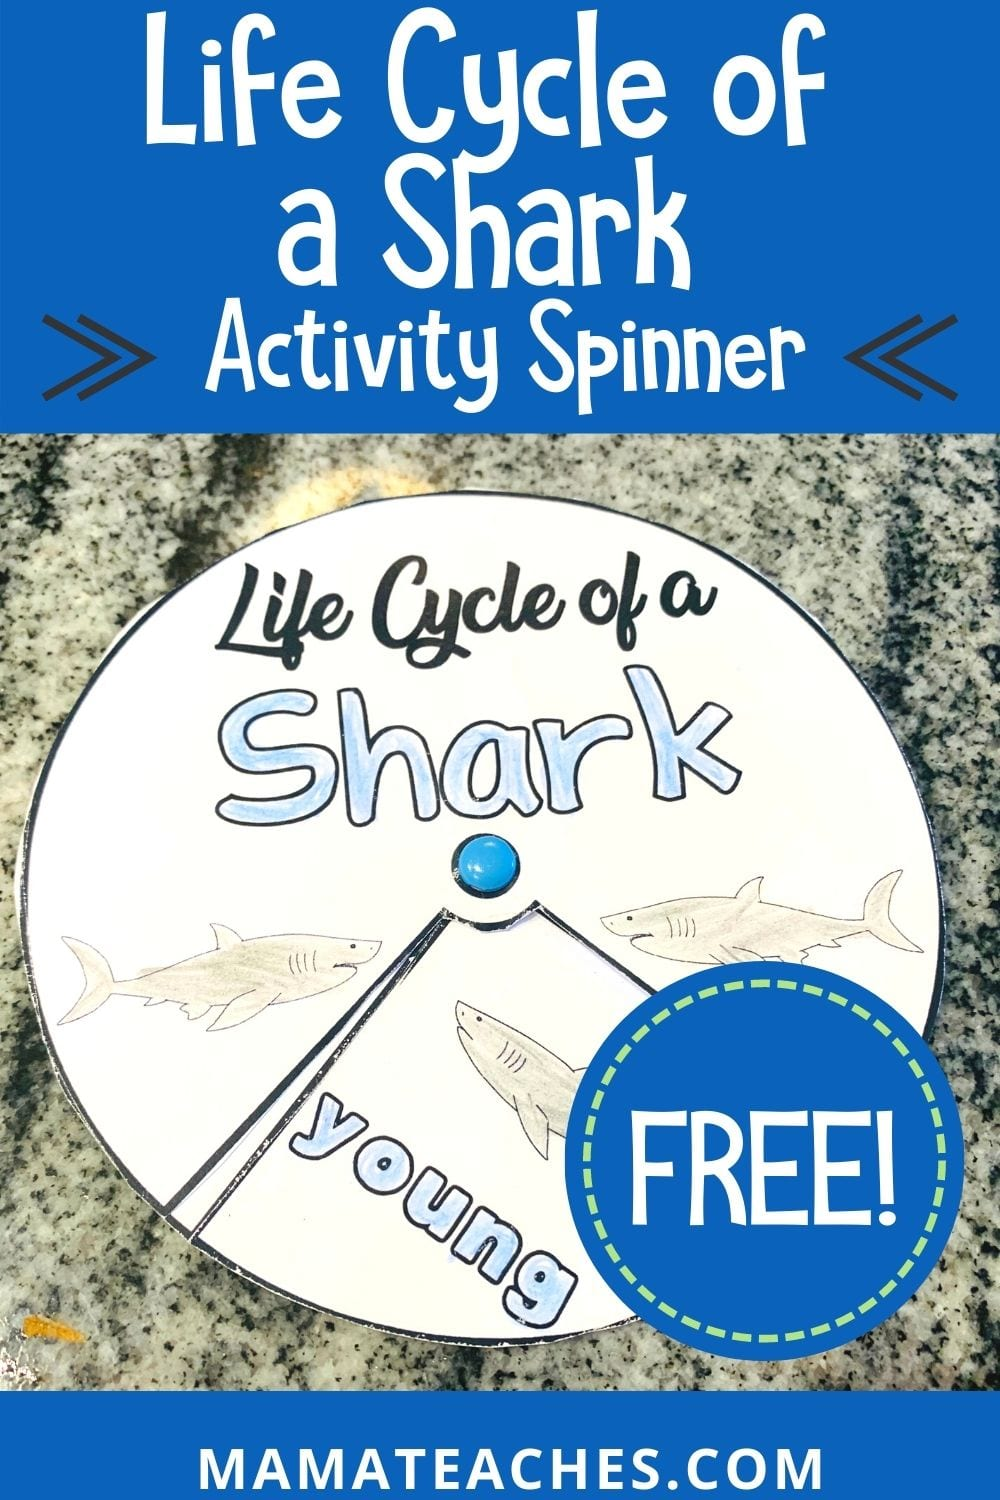 Free Life Cycle of a Shark Activity Spinner